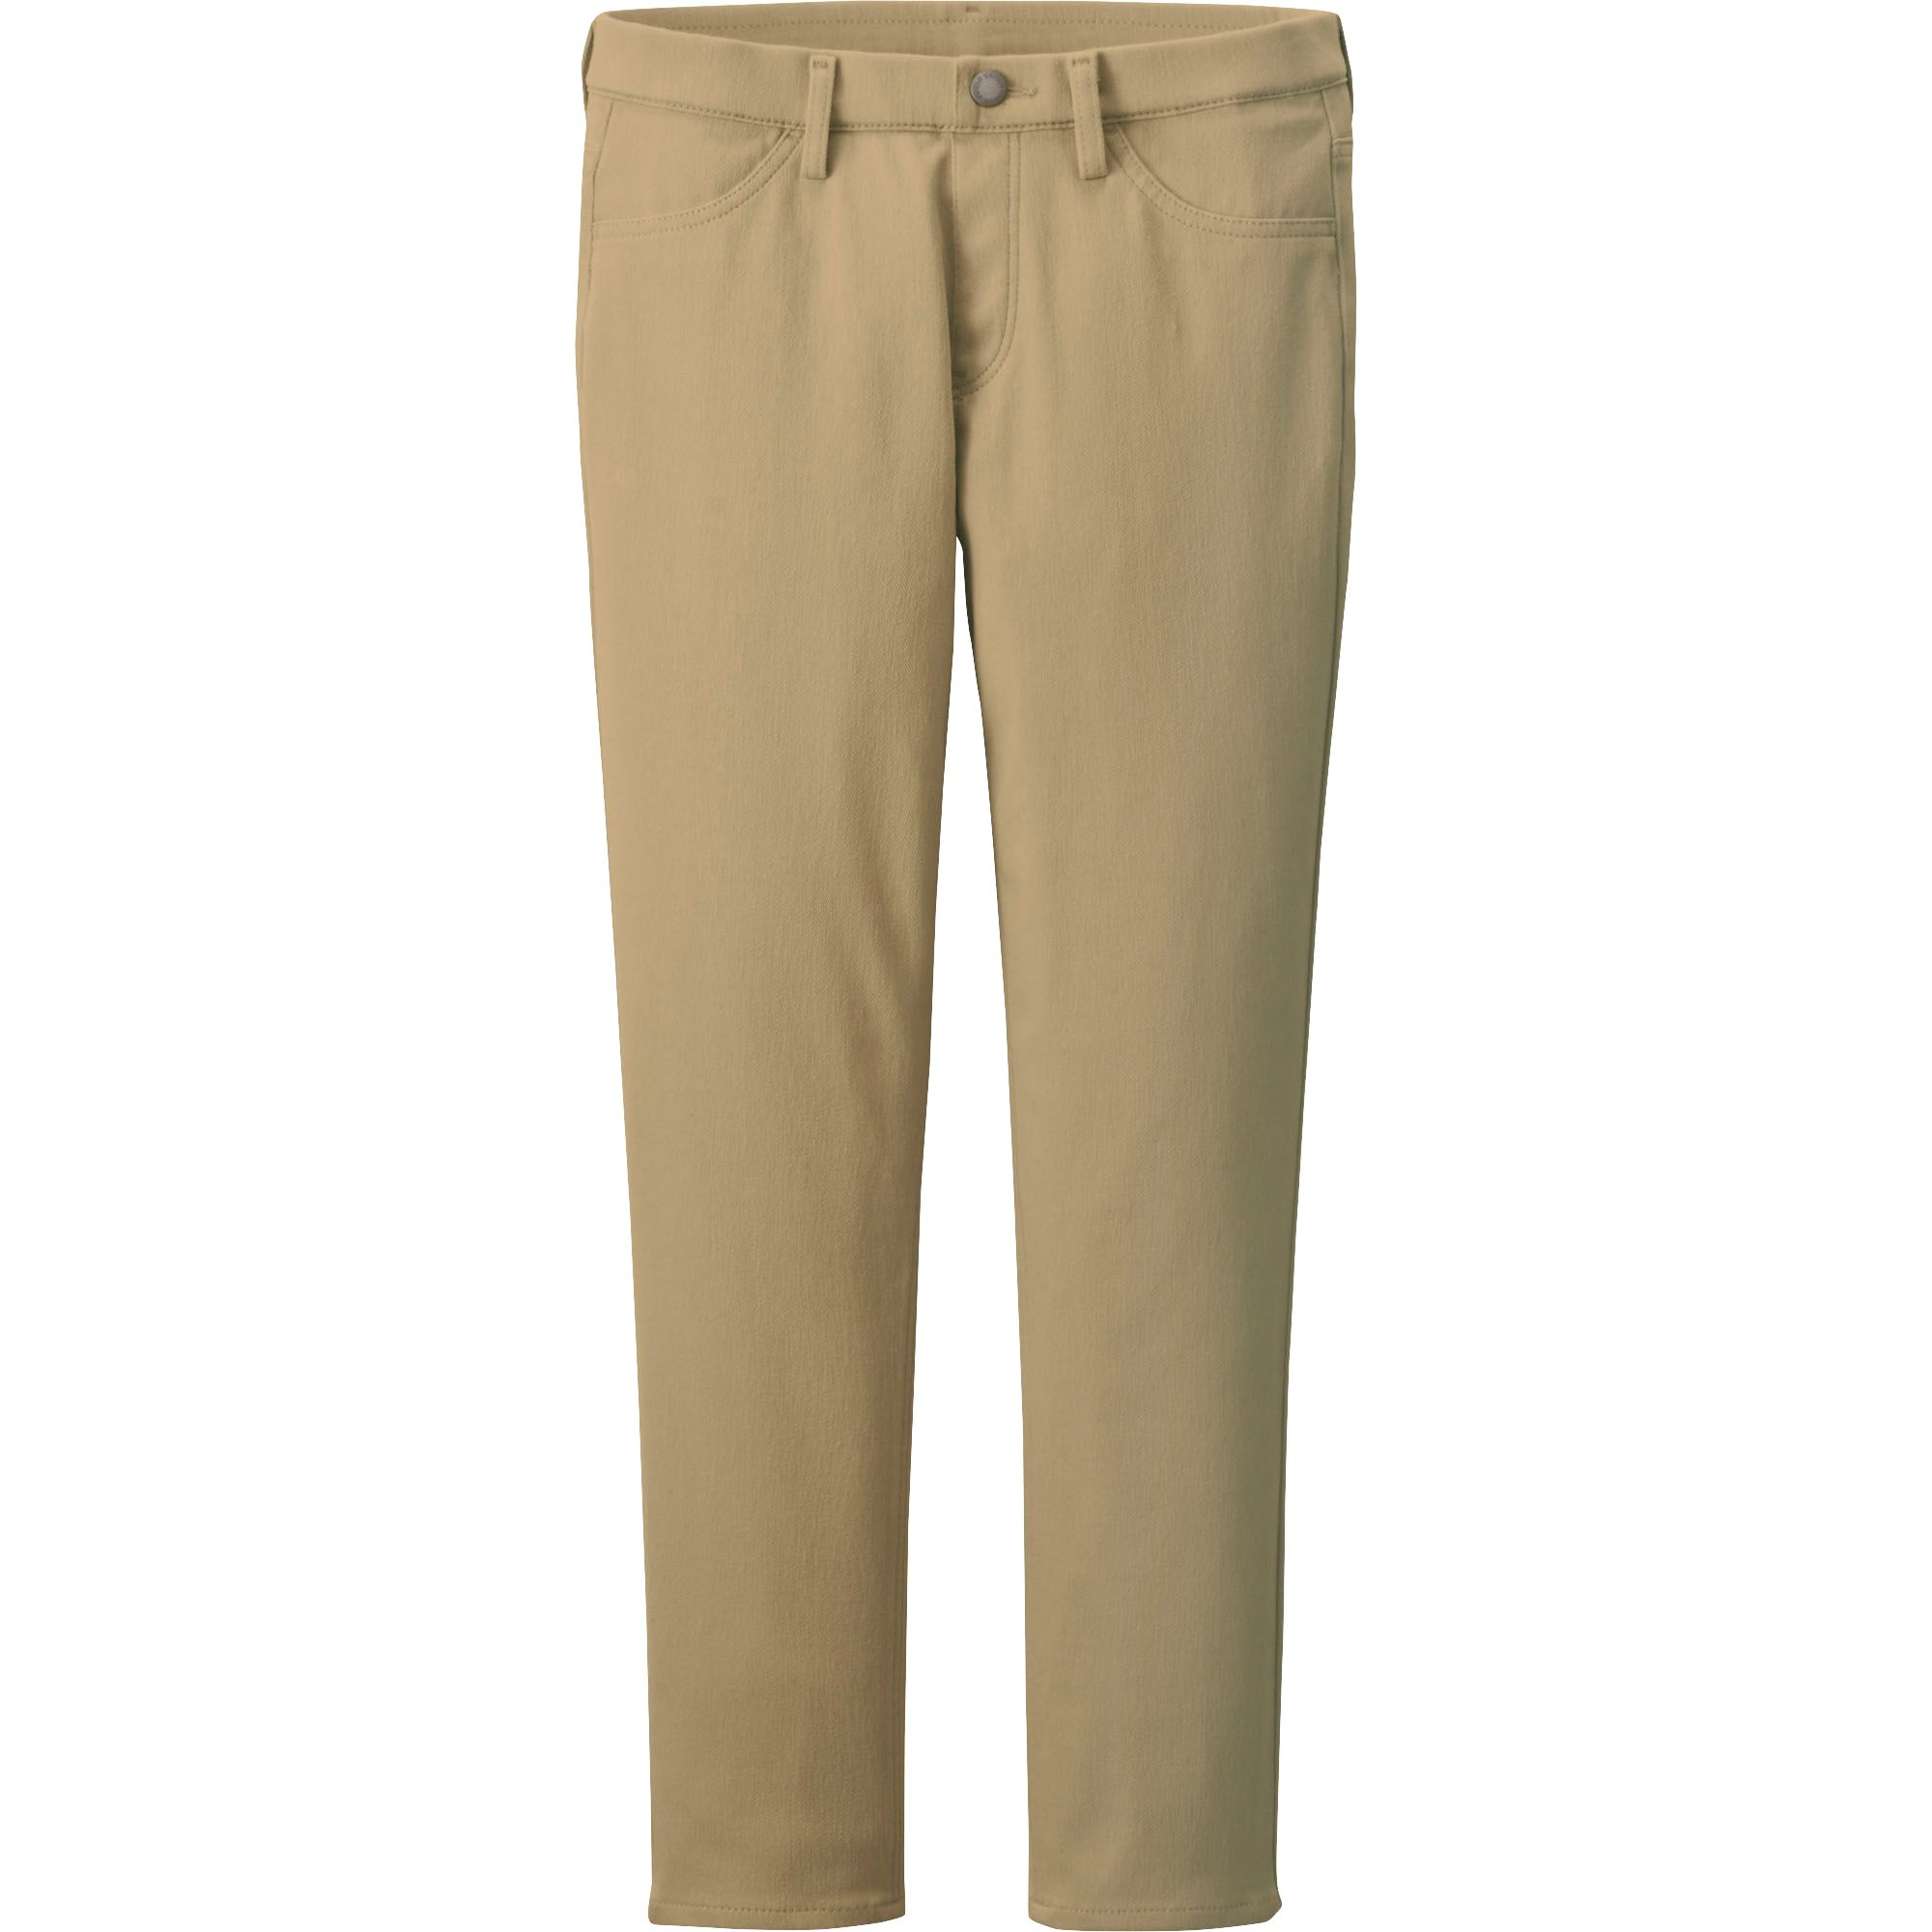 Simple For Springsummer 2018, Uniqlo Introduces A Collection Of Ankle Pants For Men And Women That Offers A Stylish But Versatile Approach To Casual Or Work Dressing A Tailored Classic That Leaves A Lot Of Room To Build Various Looks On, The Trousers